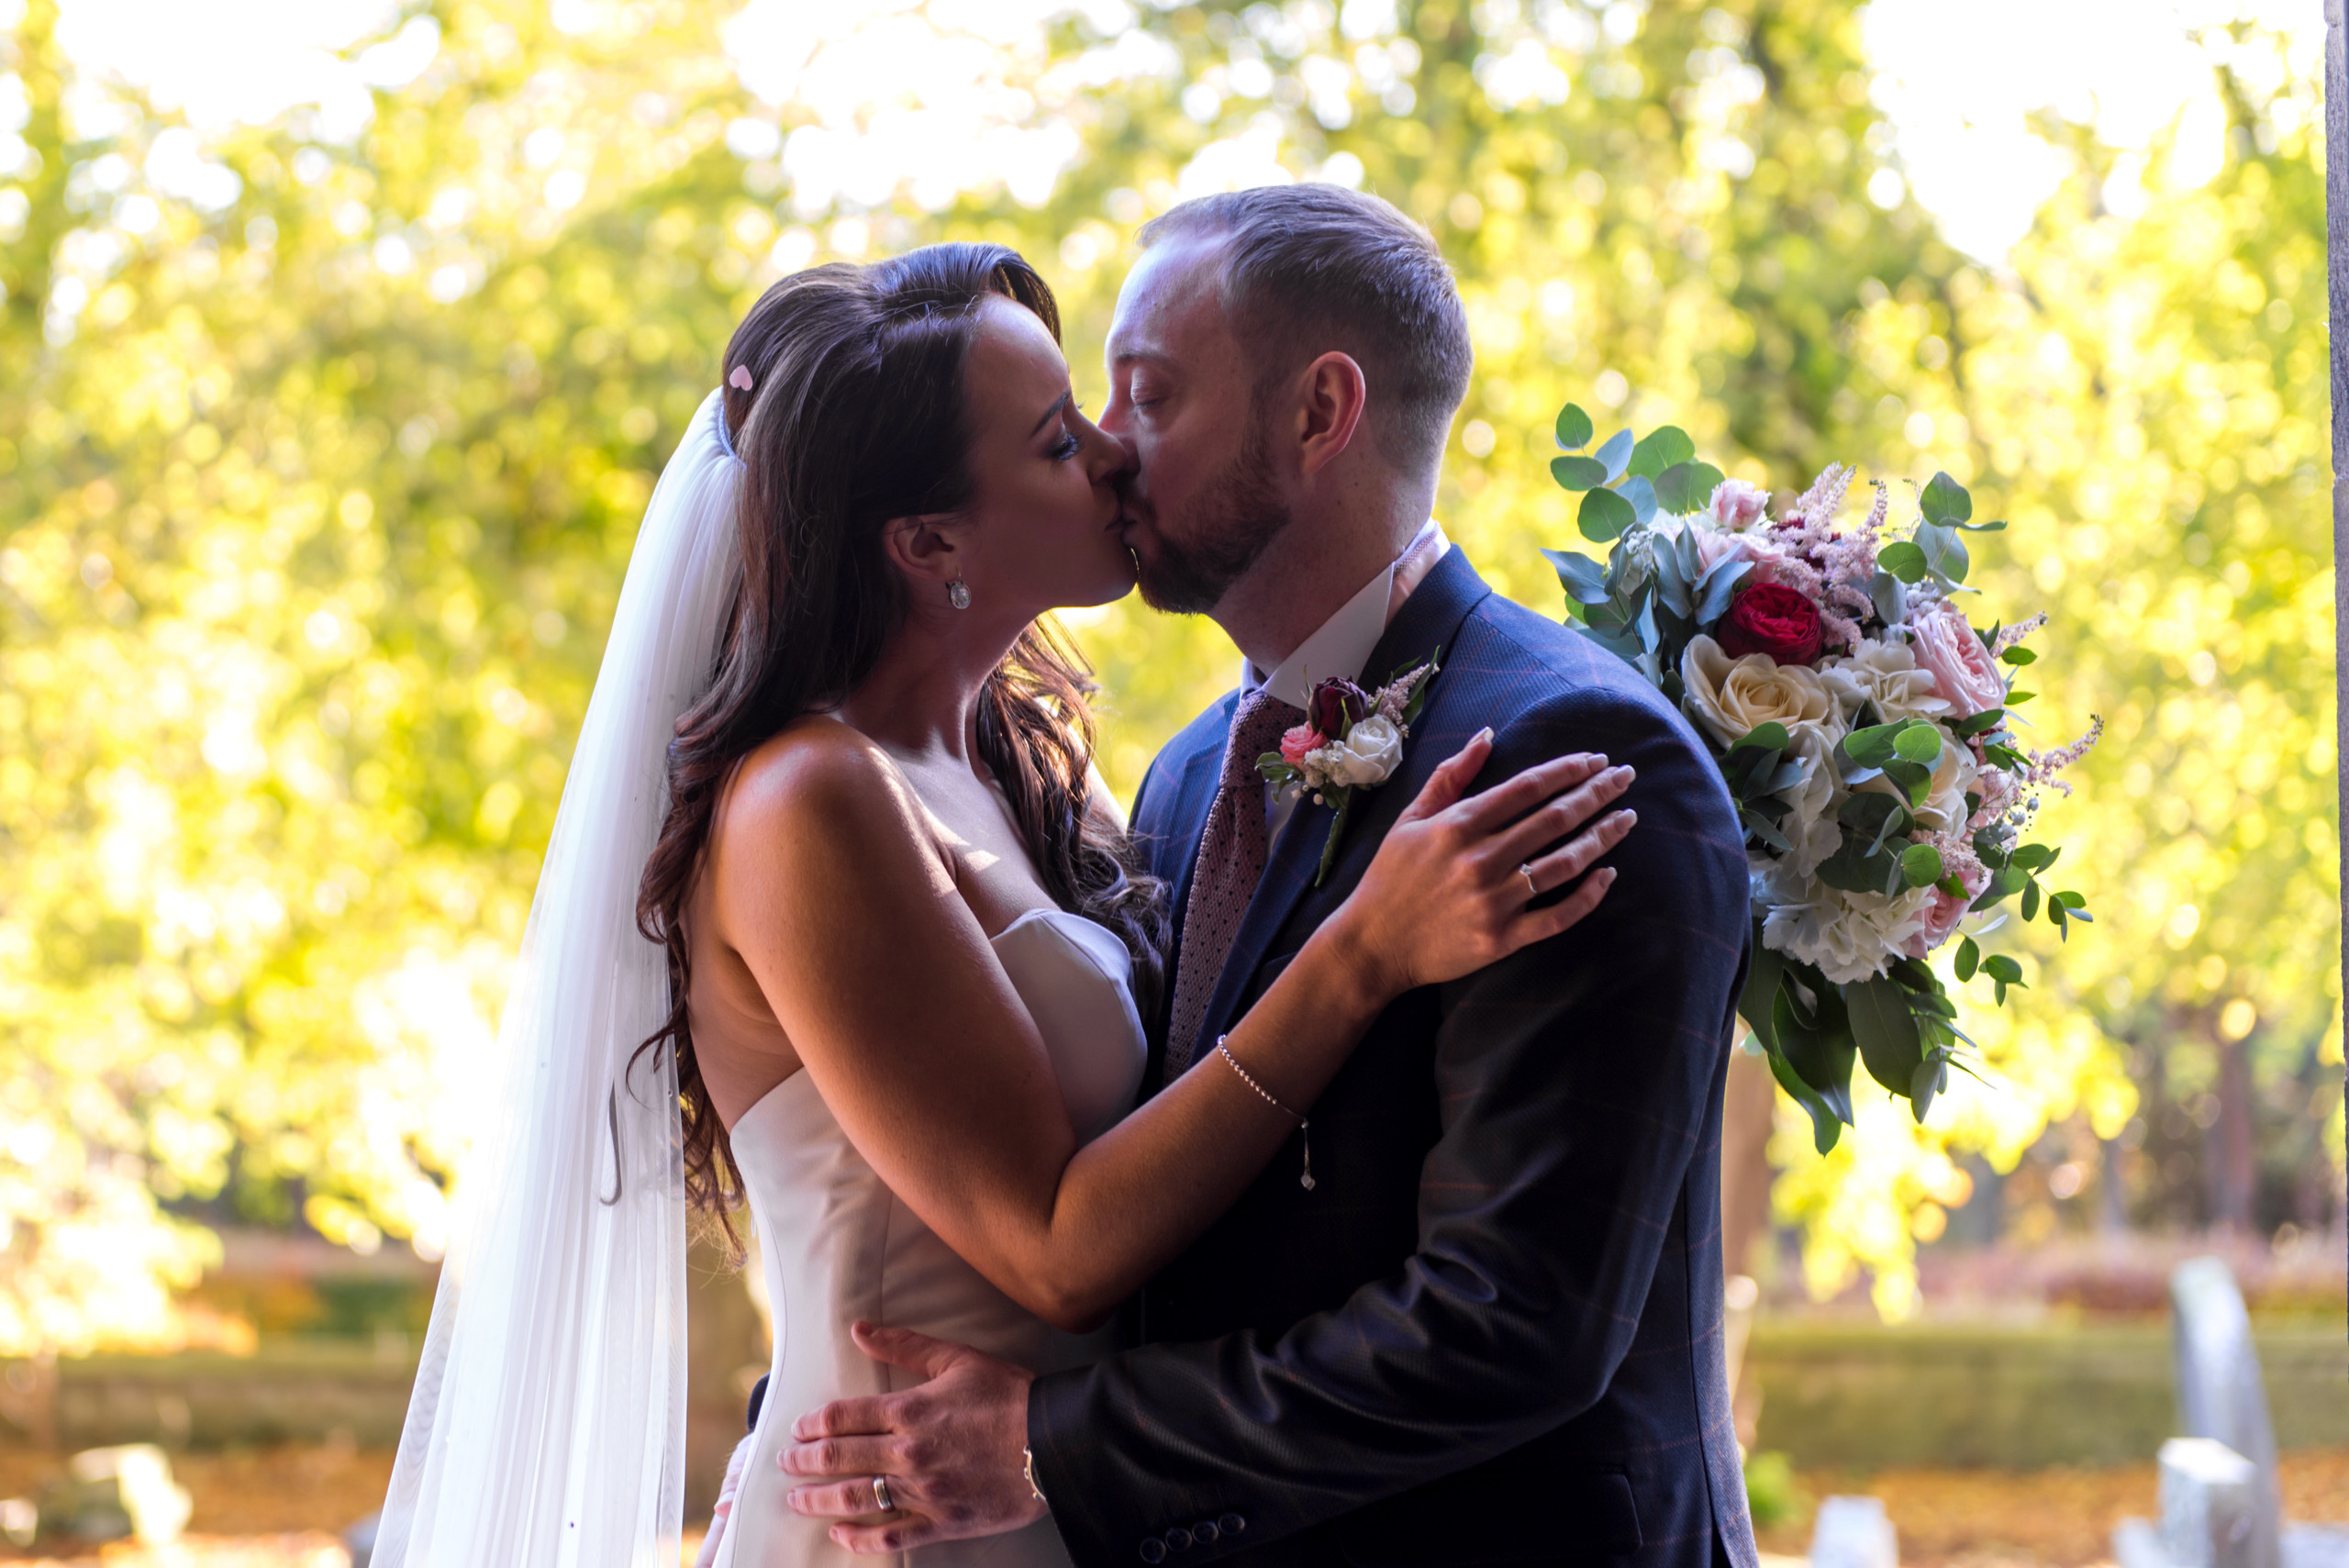 Photograph of bride and groom kissing on wedding day by Bride and Groom Wedding Photography